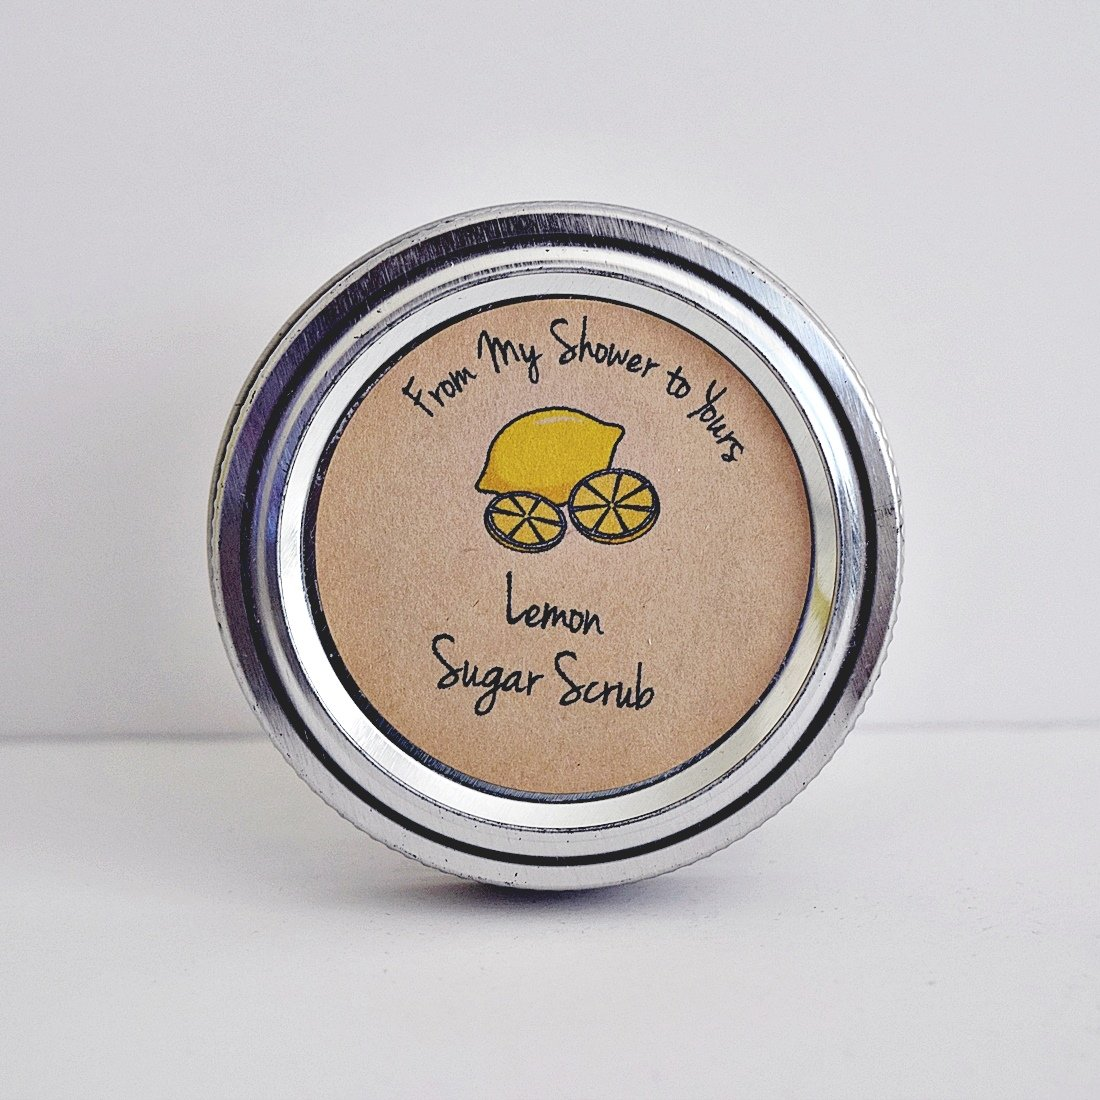 Lemon Sugar Scrub Labels for Bridal and Baby Shower Favors, From Our Shower To Yours, by Once Upon Supplies, 2'' Diameter, 40 Pcs by Once Upon Supplies (Image #3)